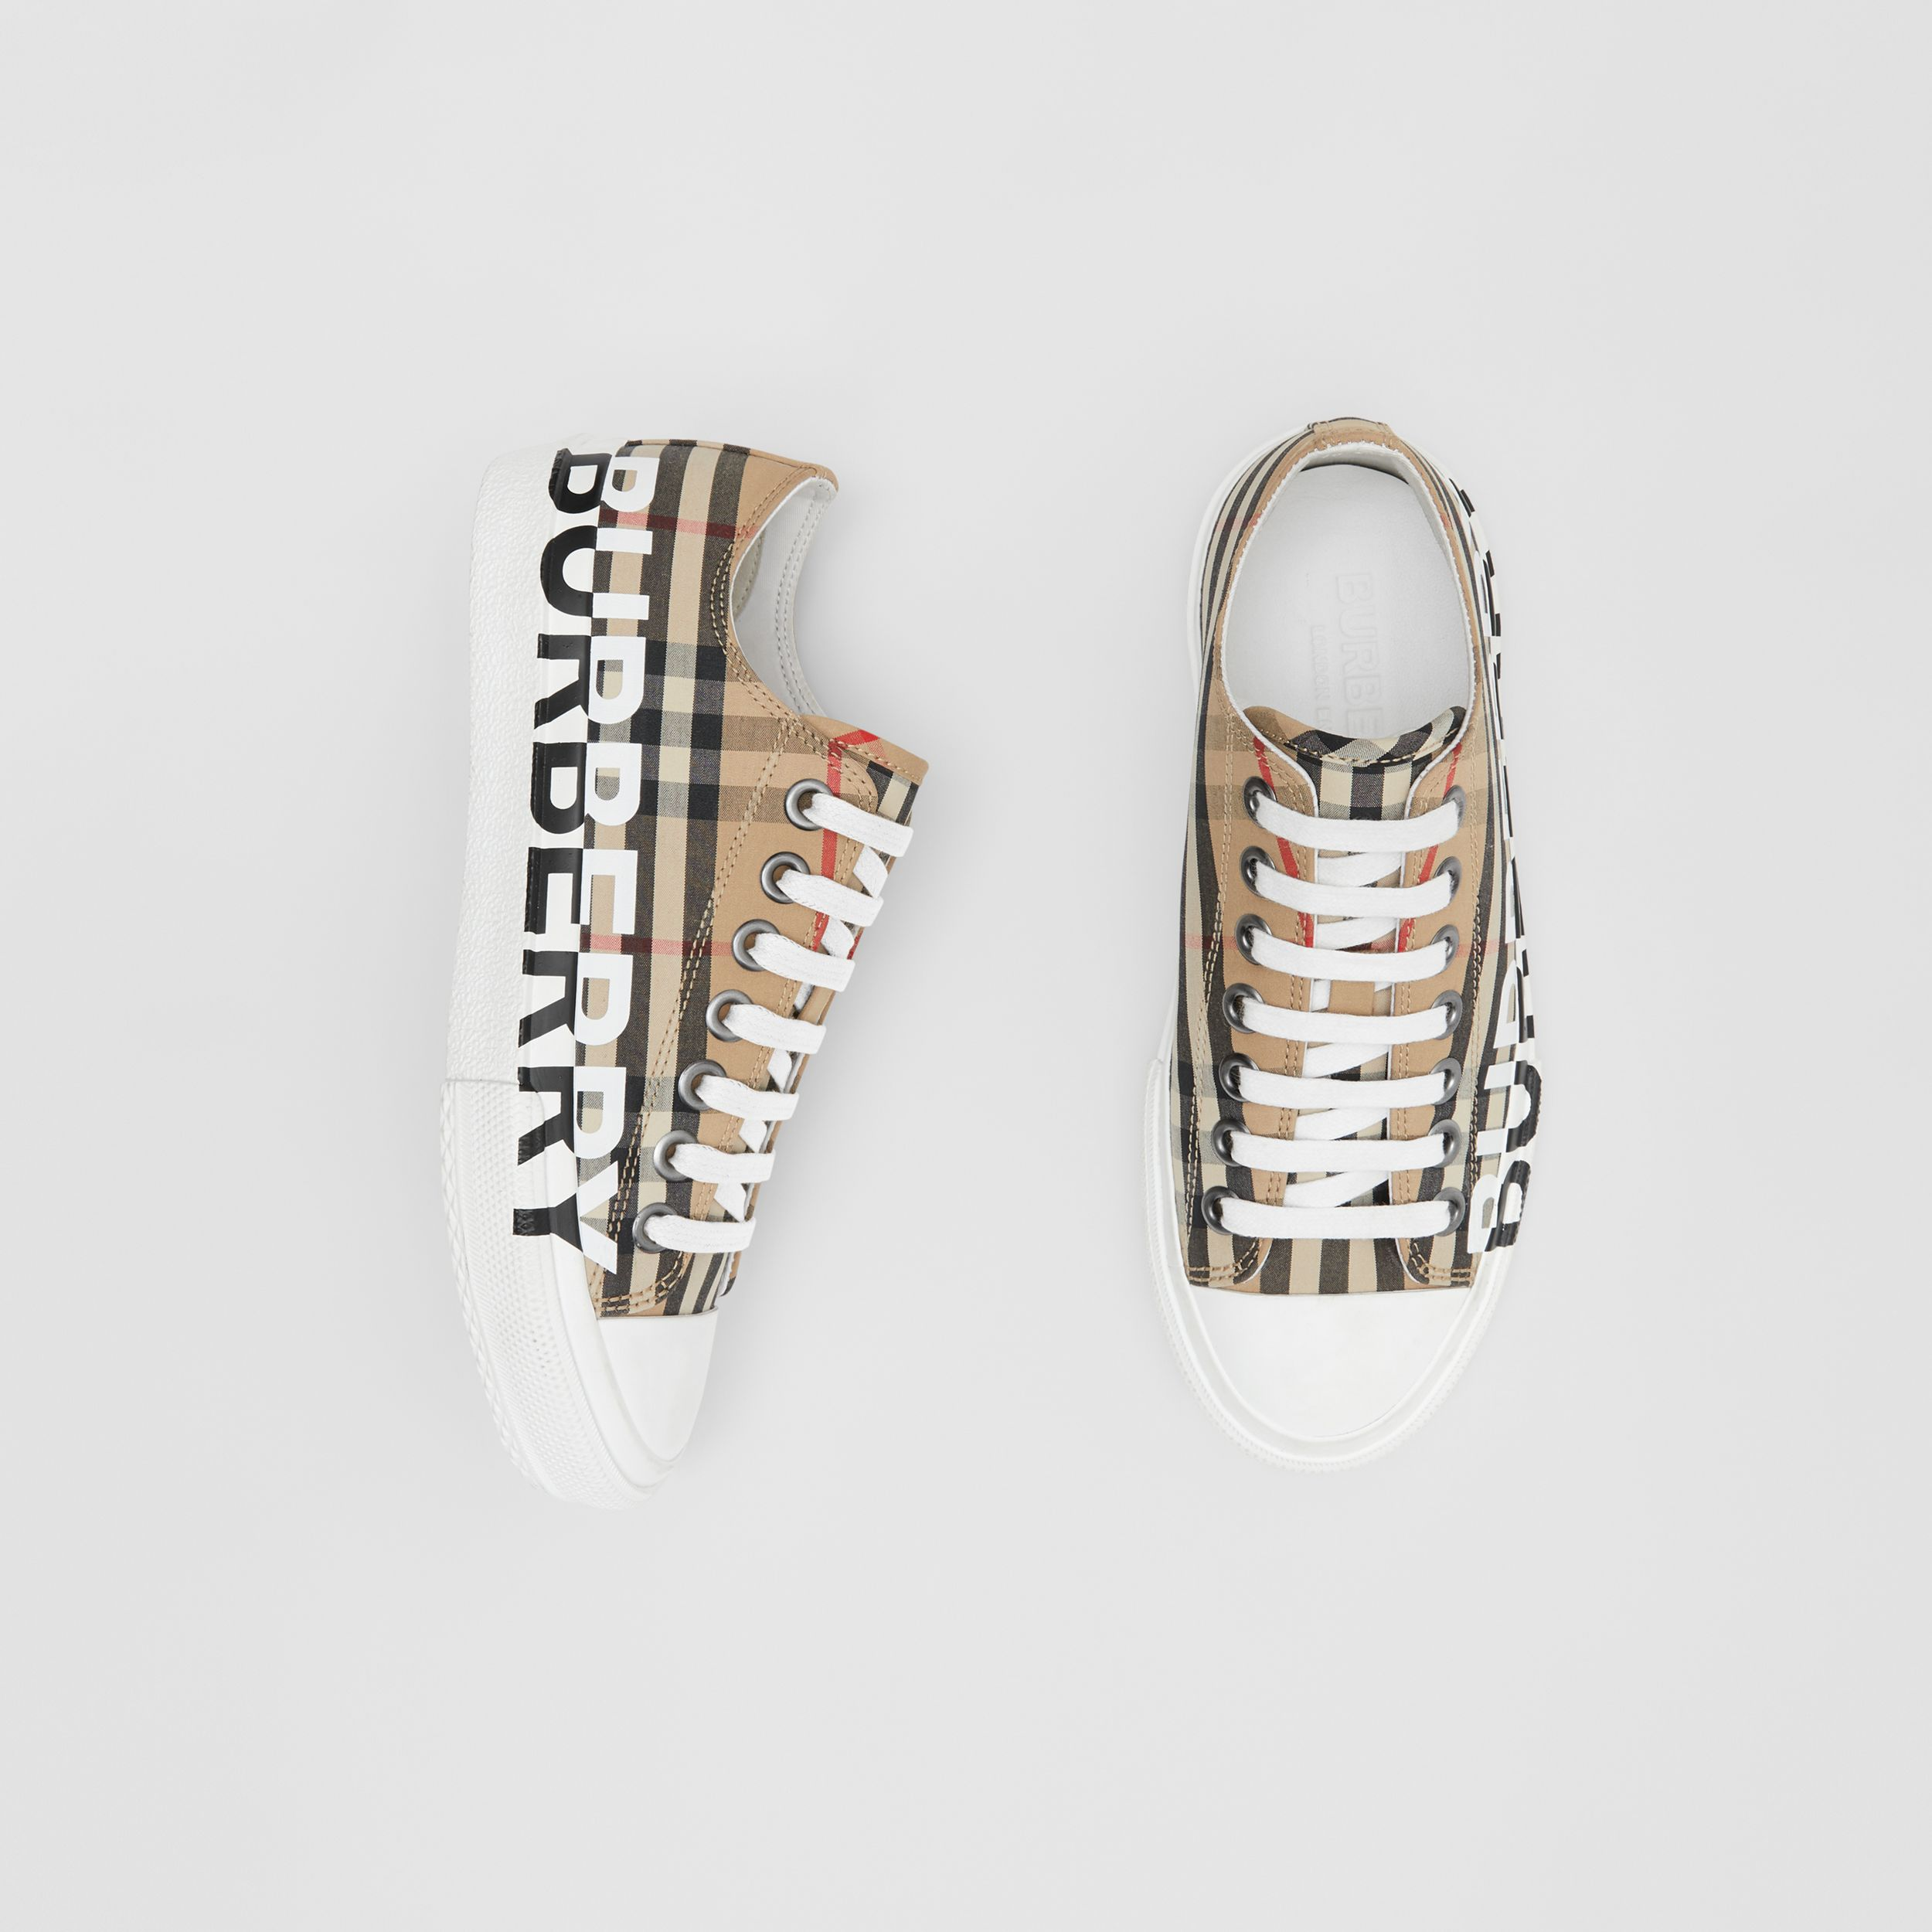 Logo Print Vintage Check Cotton Sneakers in Archive Beige - Women | Burberry United Kingdom - 1